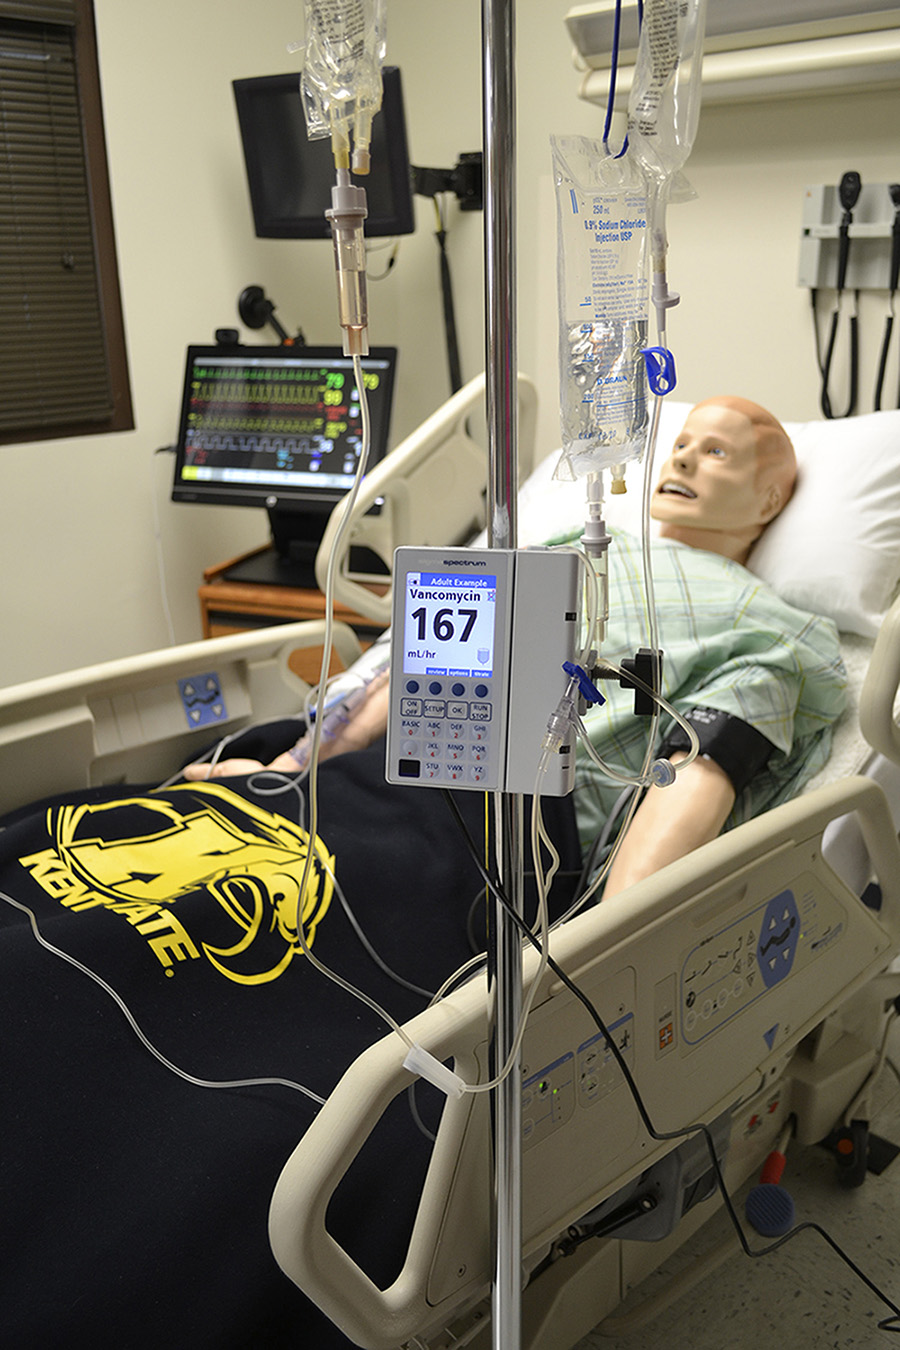 A smart-pump IV is shown giving a dose of high-risk IV medication to a 3G manikin